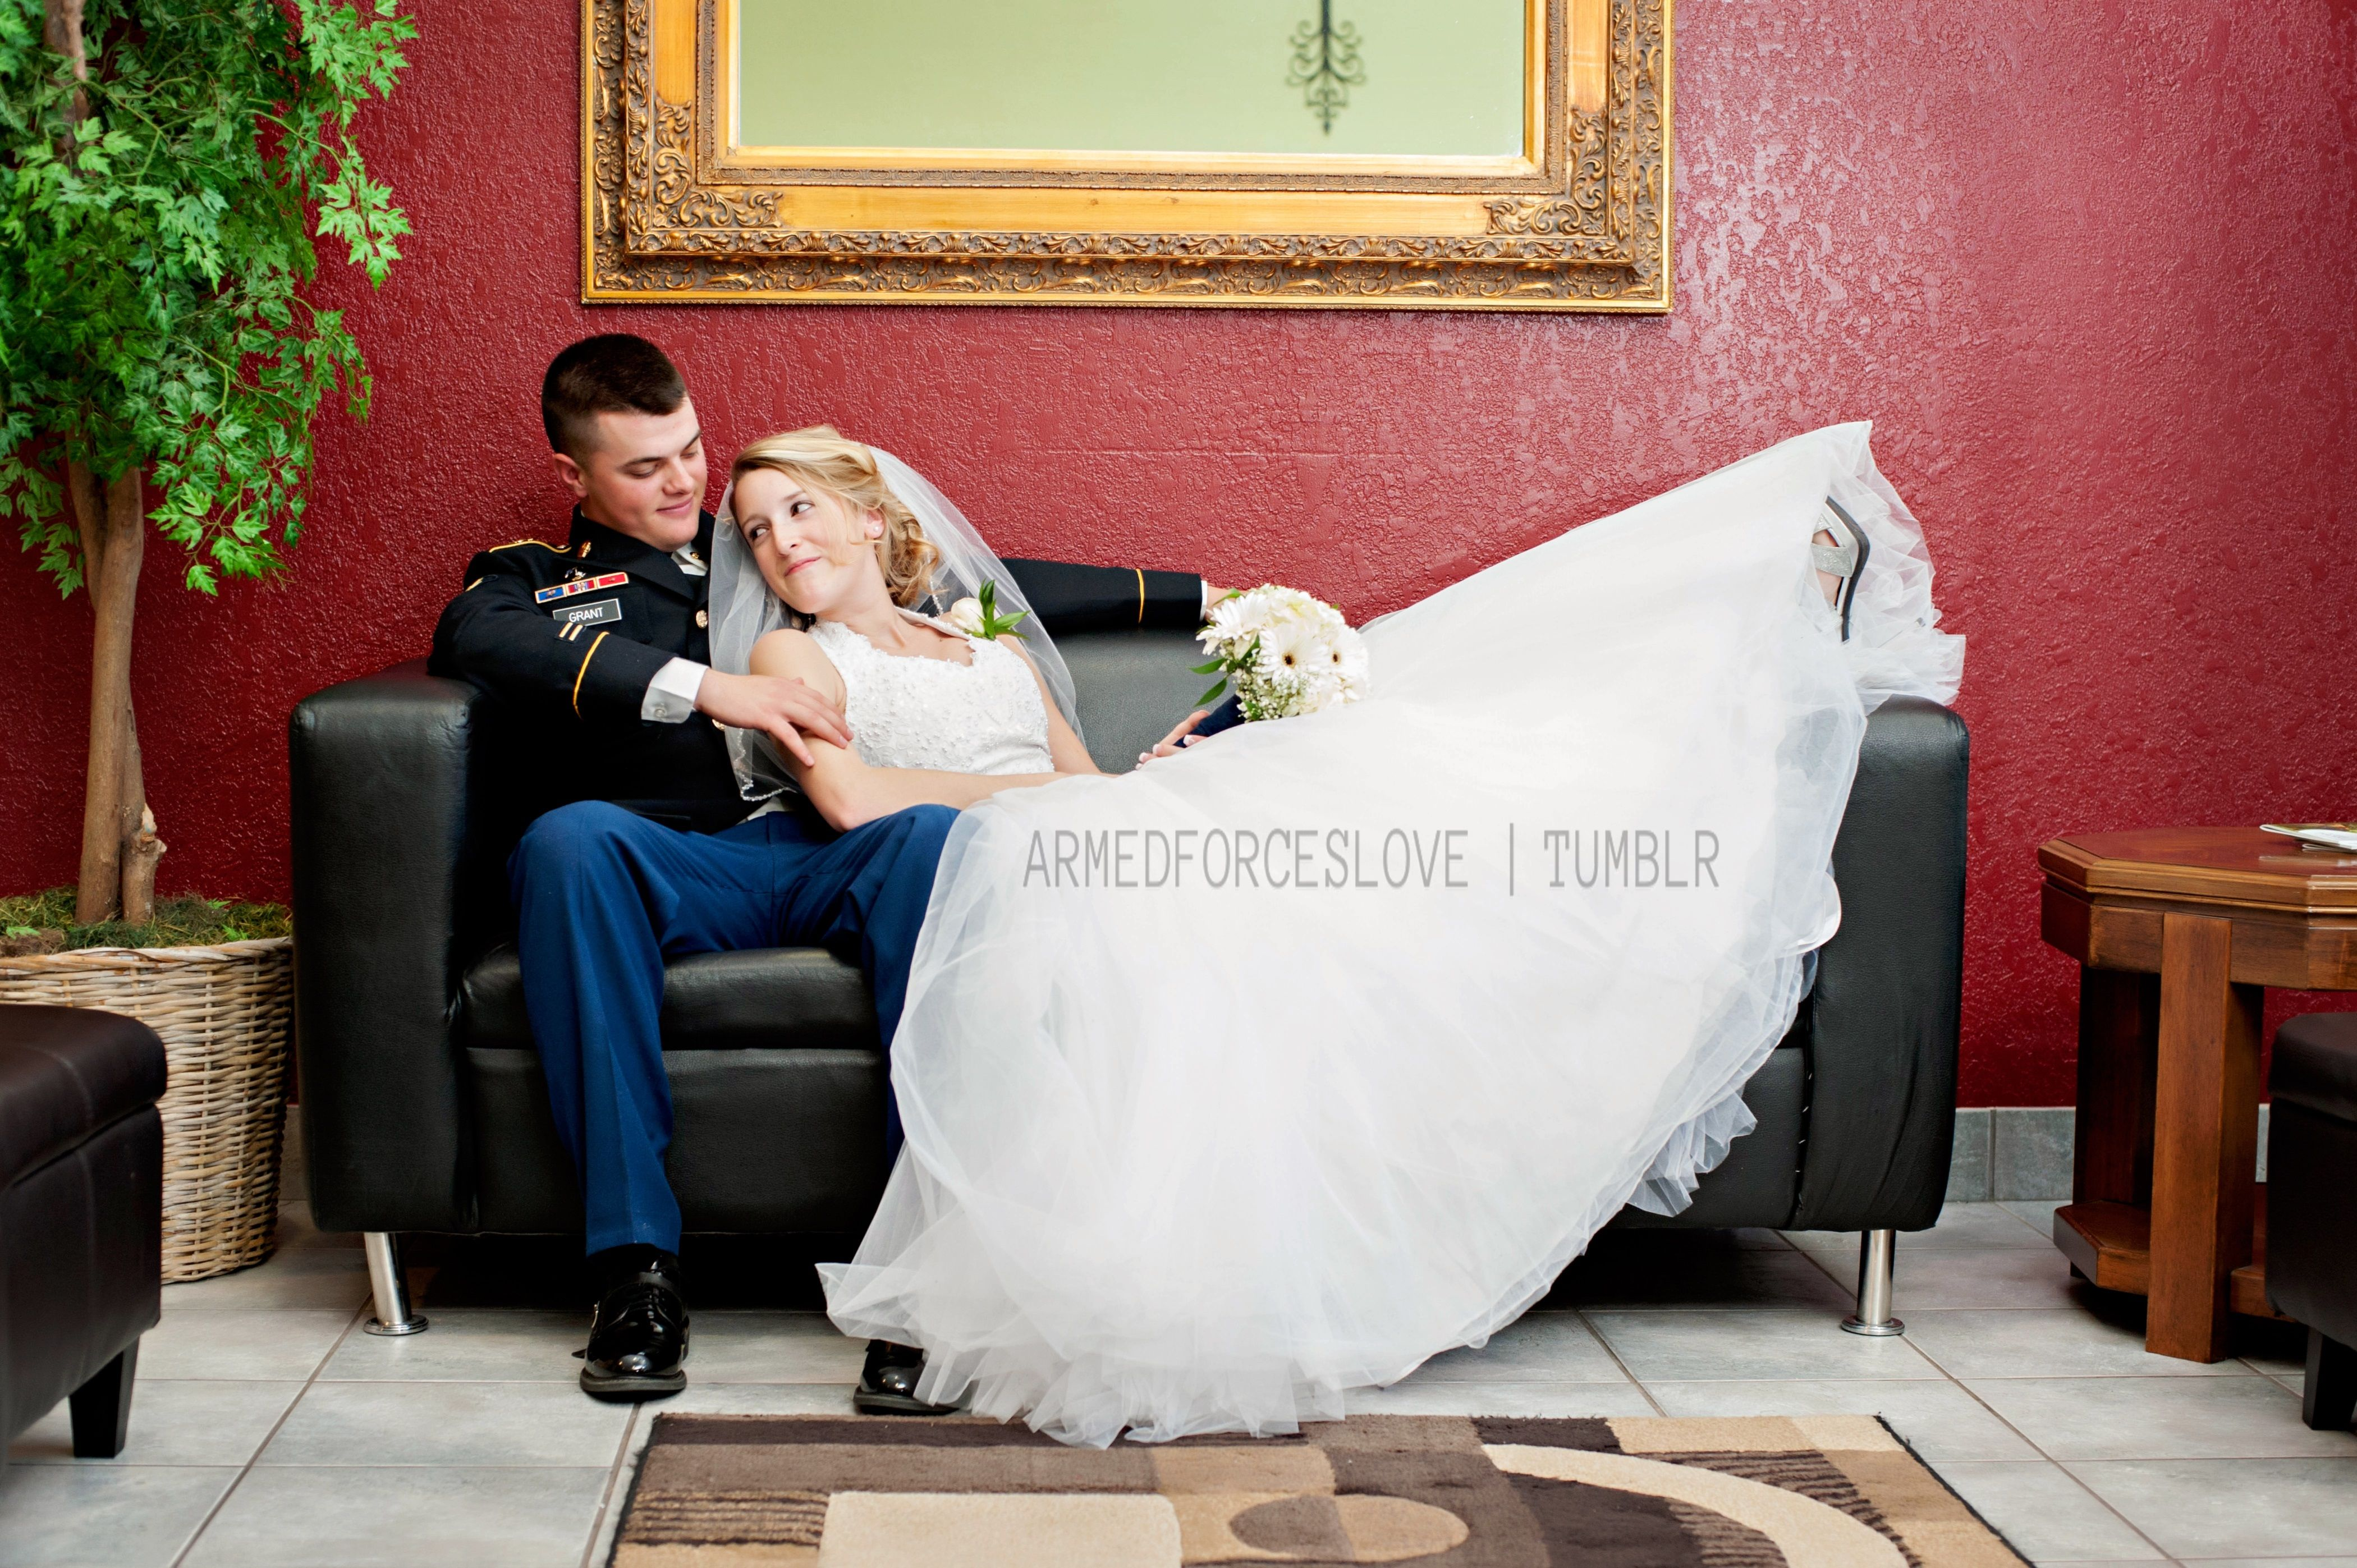 Military/Army Wedding. My Husband And I After Our Ceremony